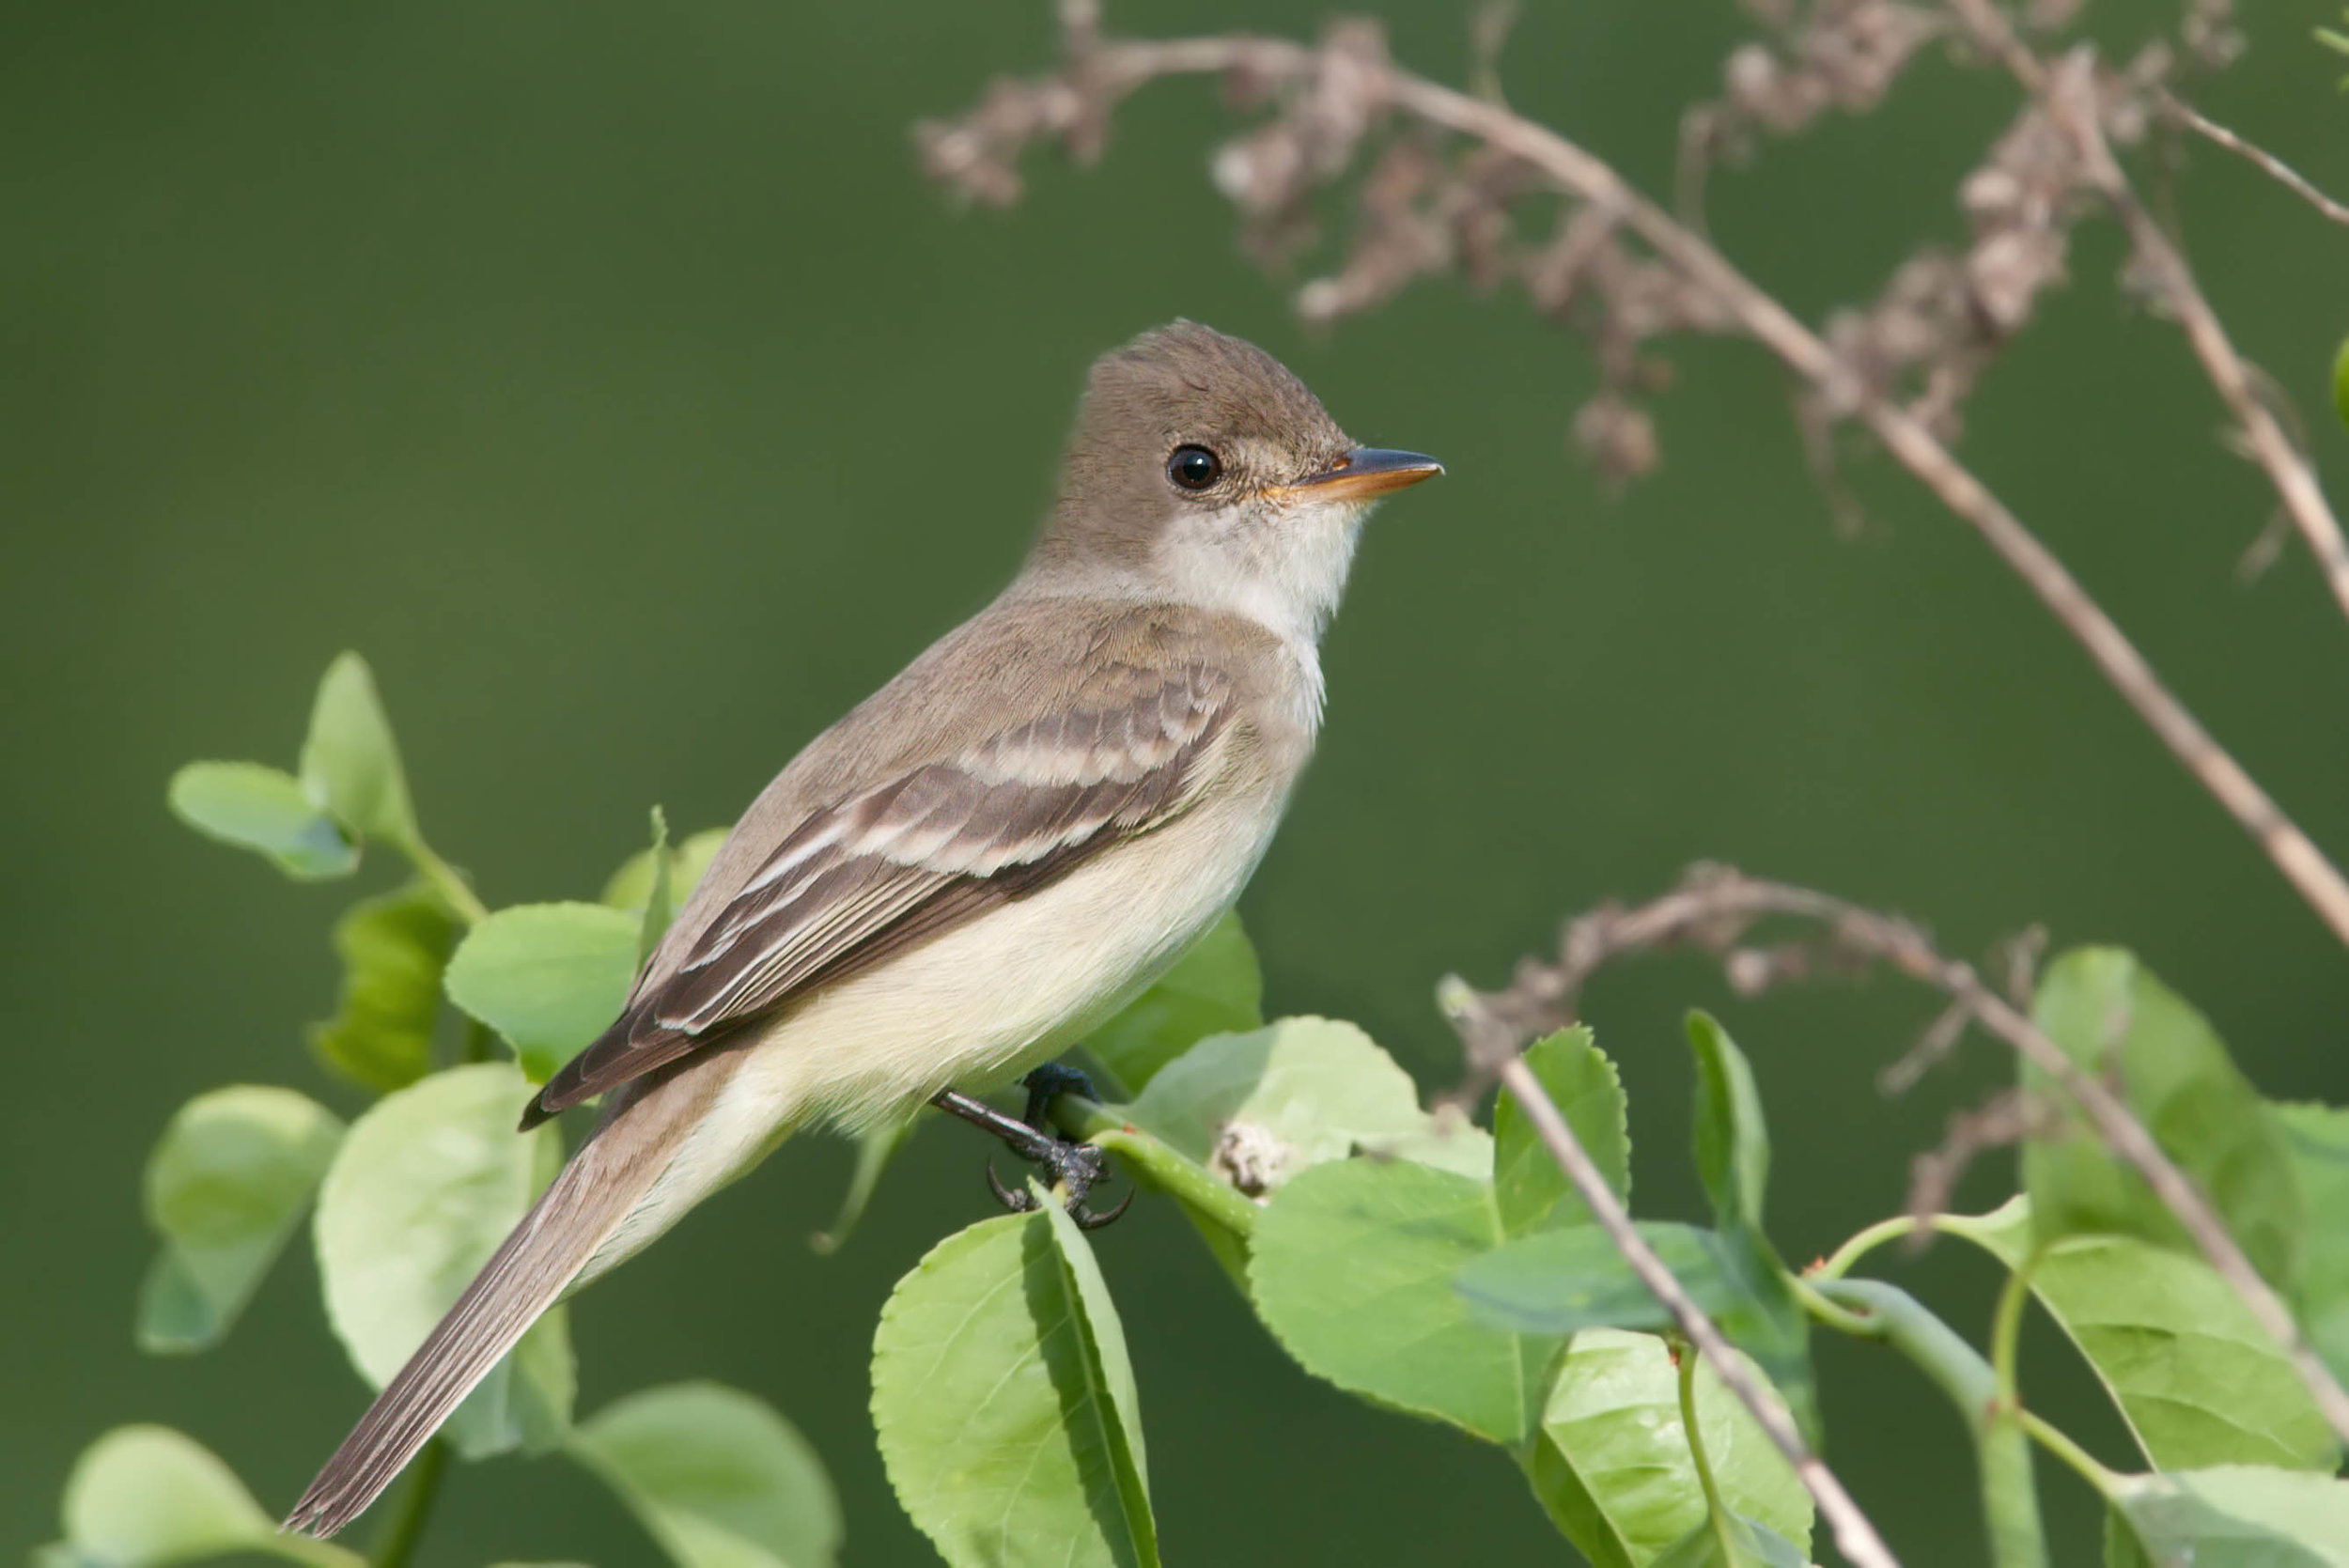 """- Willow Flyctcher (Empidonax traillii)Willow Flycatchers live in marshy areas with willow trees and other deciduous trees. Their diet consists of winged insects and berries. They weigh 0.4-0.6 oz. and have a wingspan of 7.5-9.4 in. Willow Flycatchers and Alder Flycatchers look so similar that they were once considered the same species, the Traill's Flycatcher. They only way most people can tell them apart is by their calls. Willow Flycatchers sing a buzzy """"fitz-bew"""" or """"pit-speer."""" They are protected on the US Migratory Bird list.Photo Credits: Kelly Colgan Azar"""